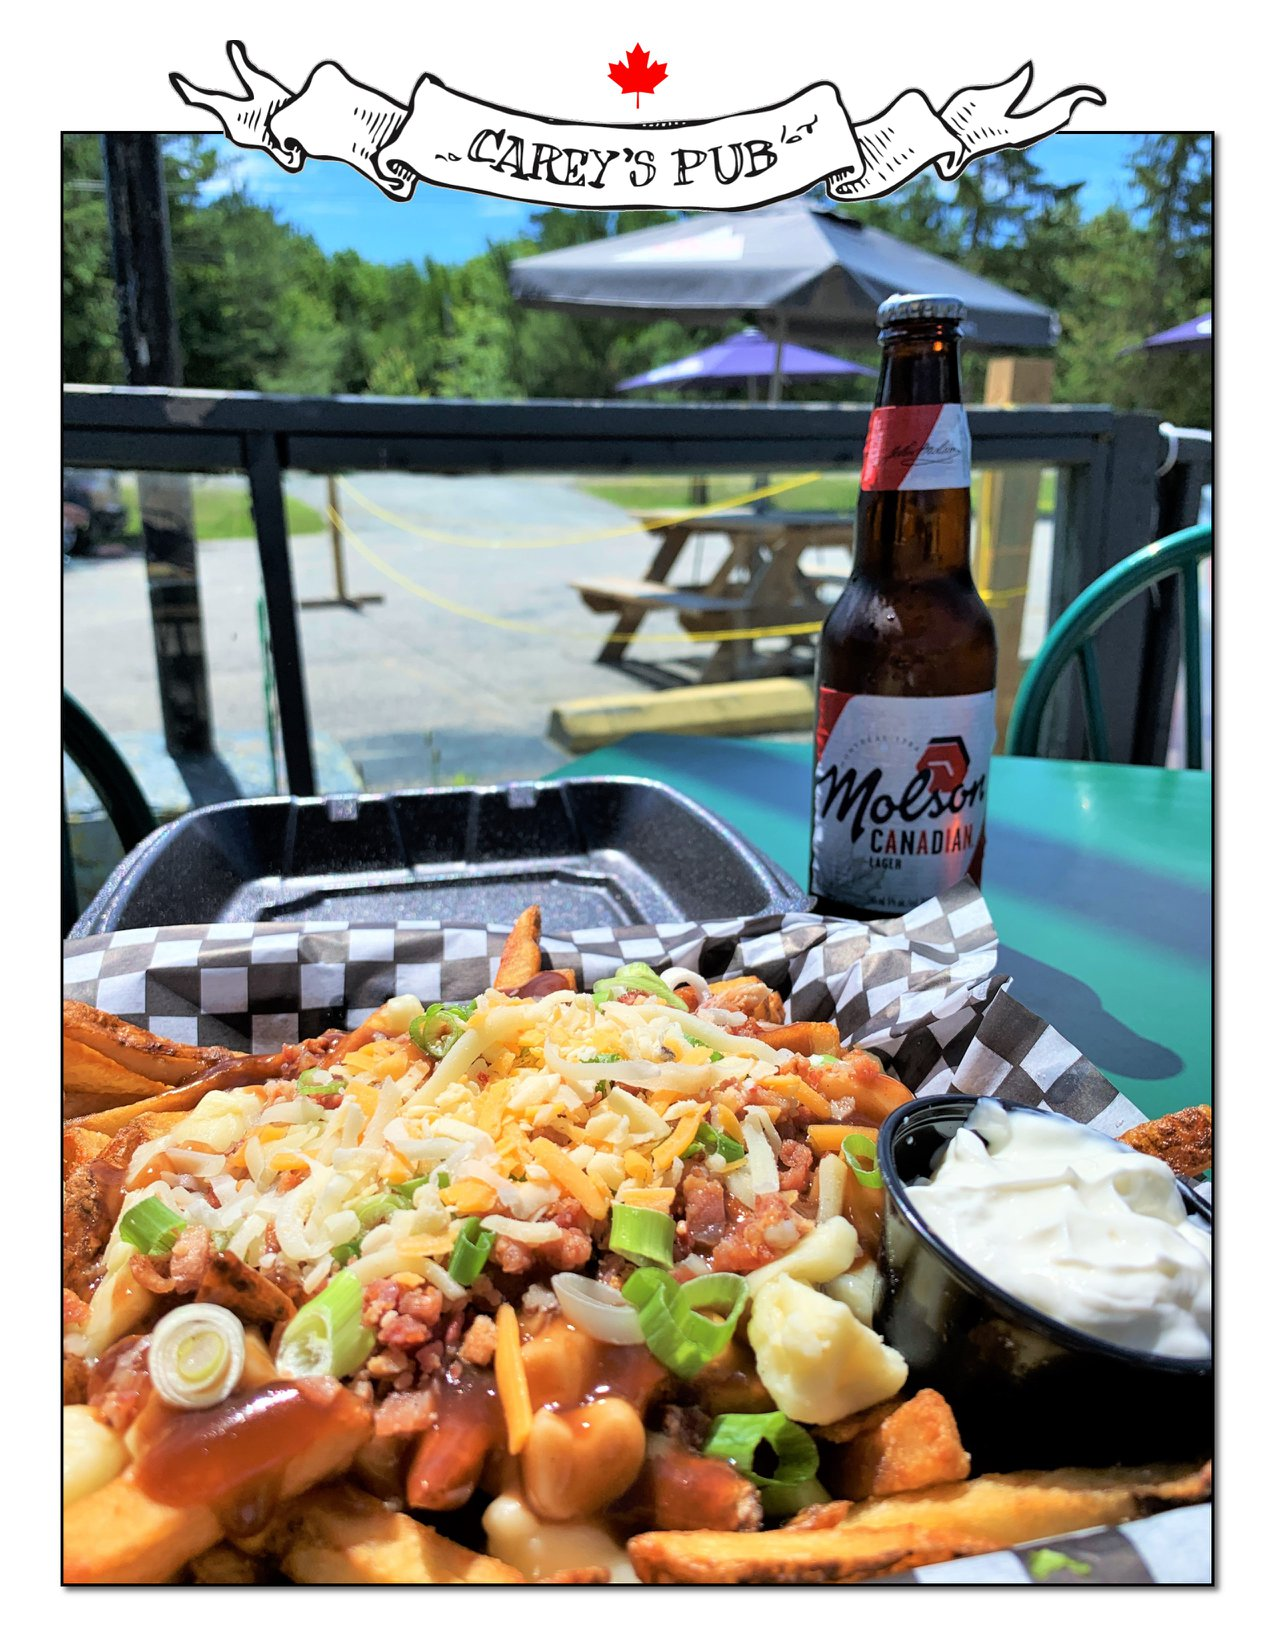 A poutine and a beer, photo in a white border